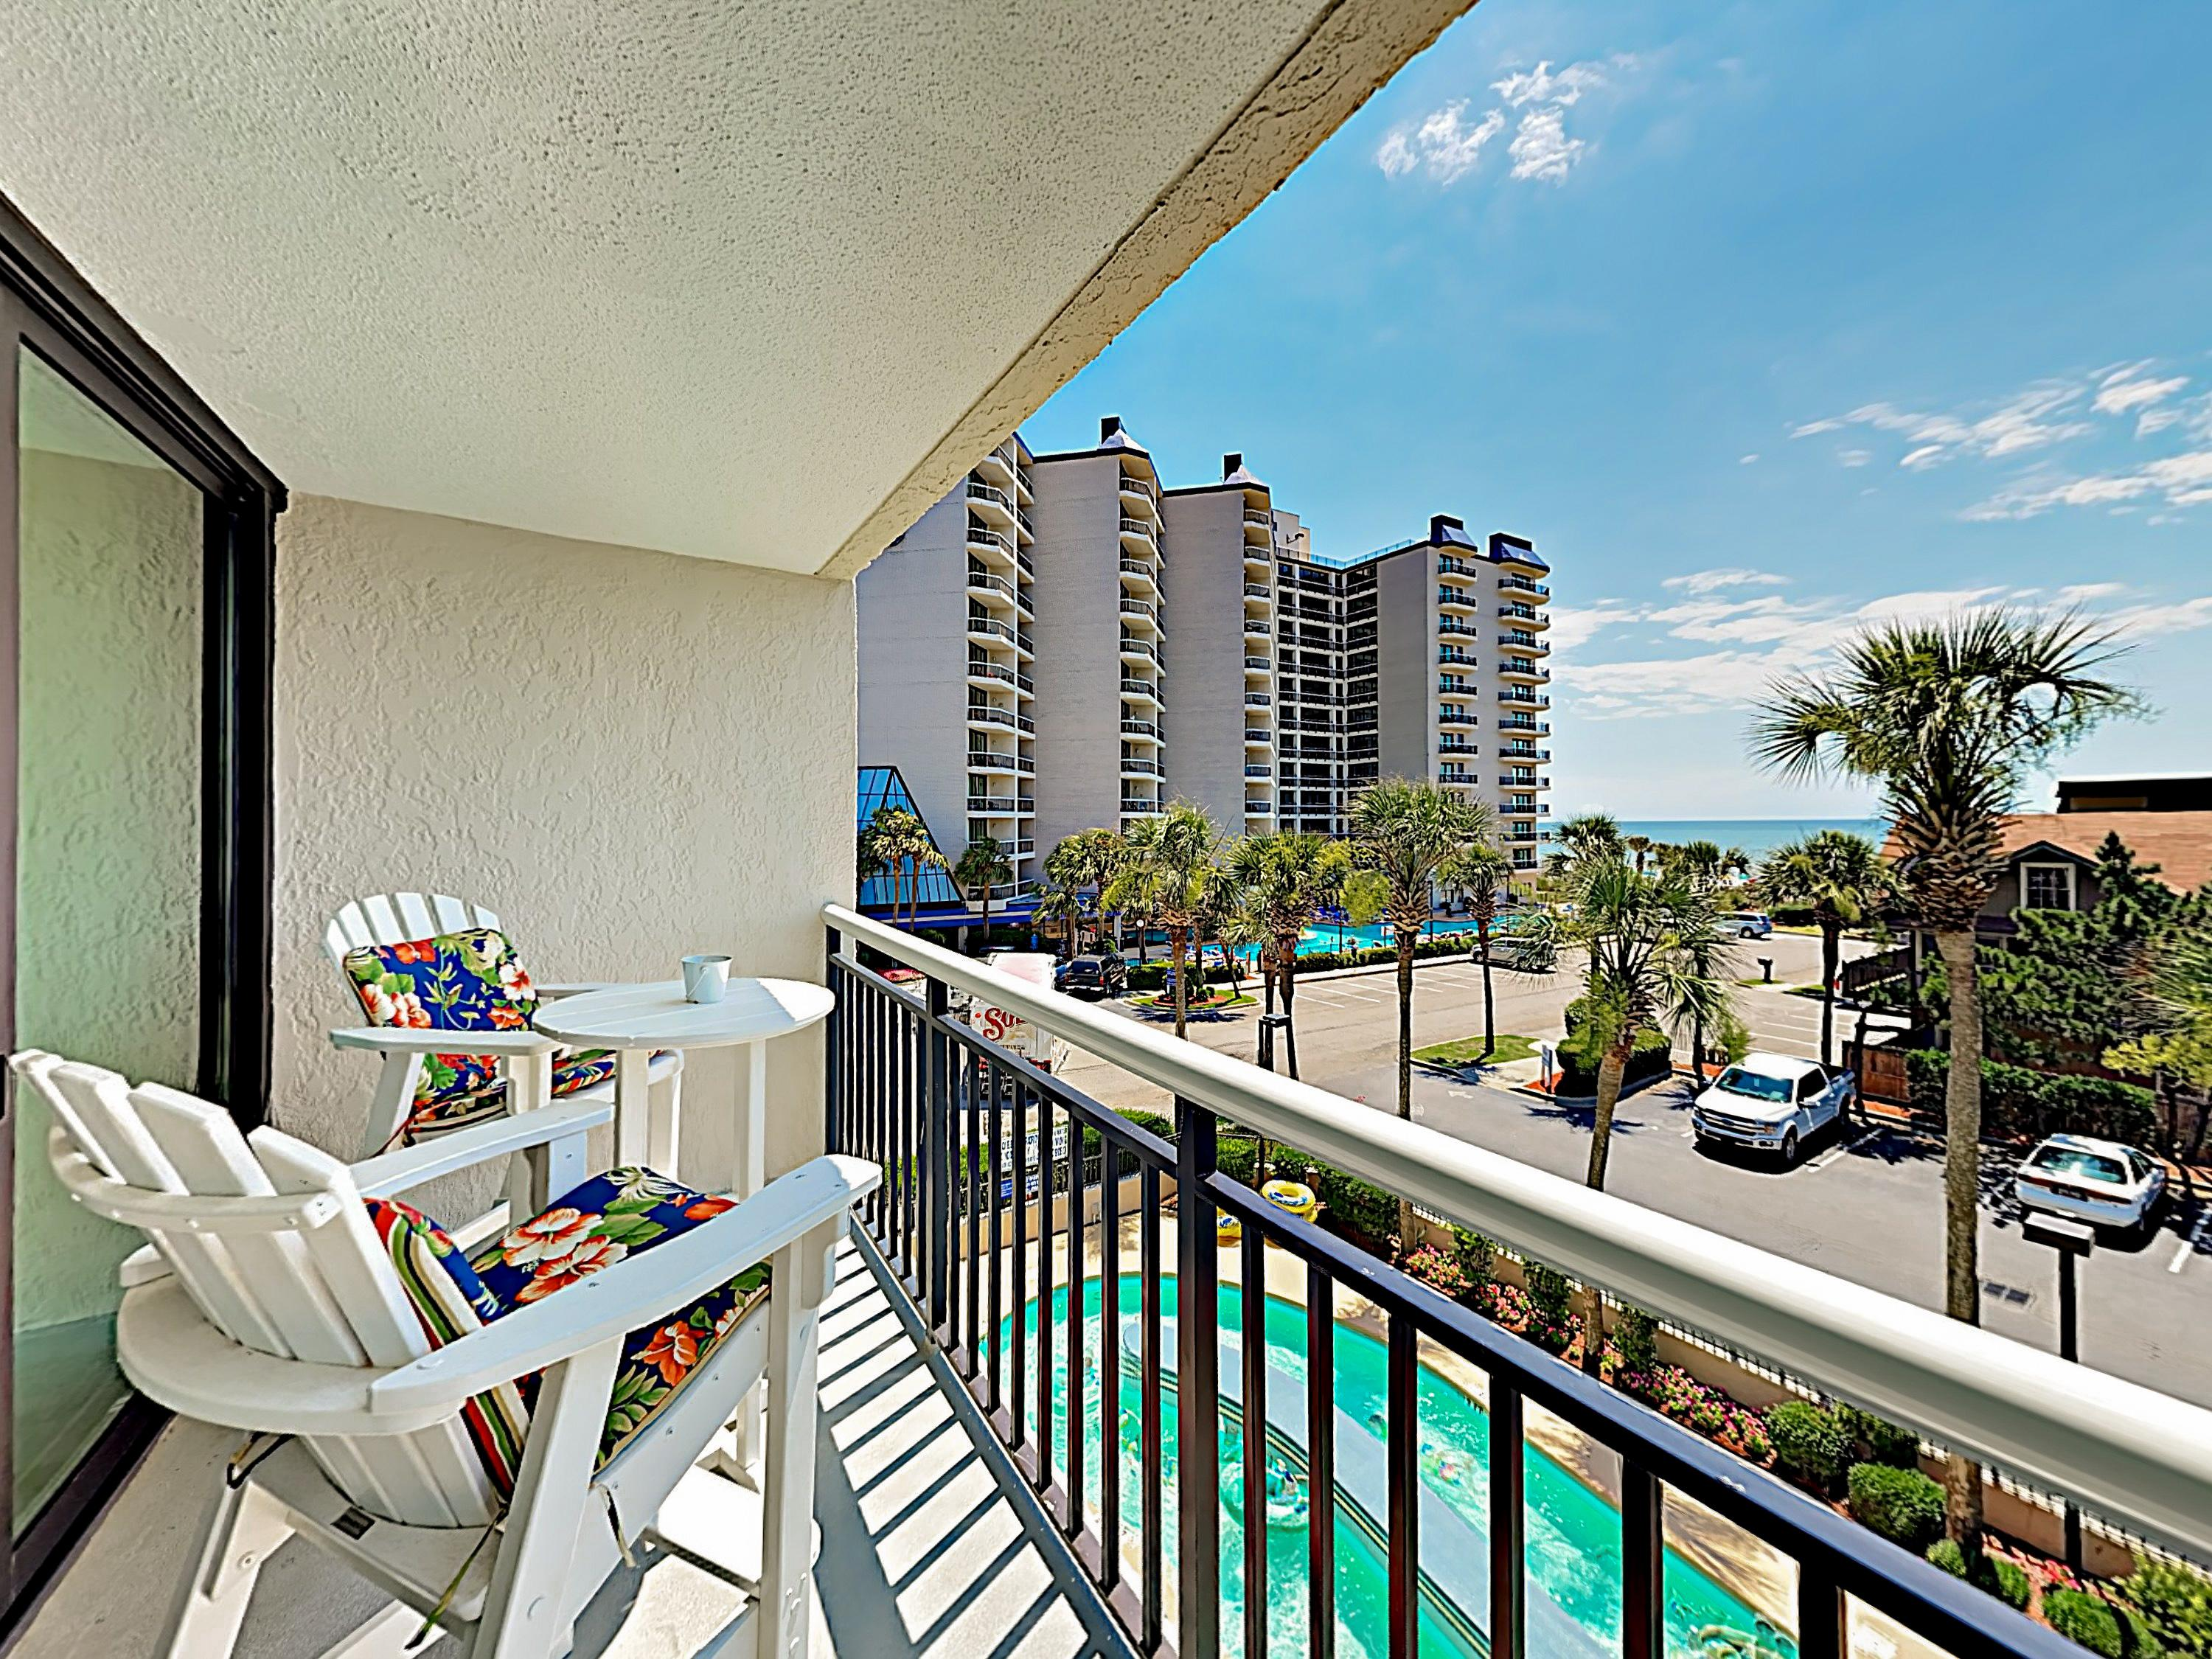 Welcome to Myrtle Beach! This gorgeously remodeled condo is professionally managed by TurnKey Vacation Rentals.